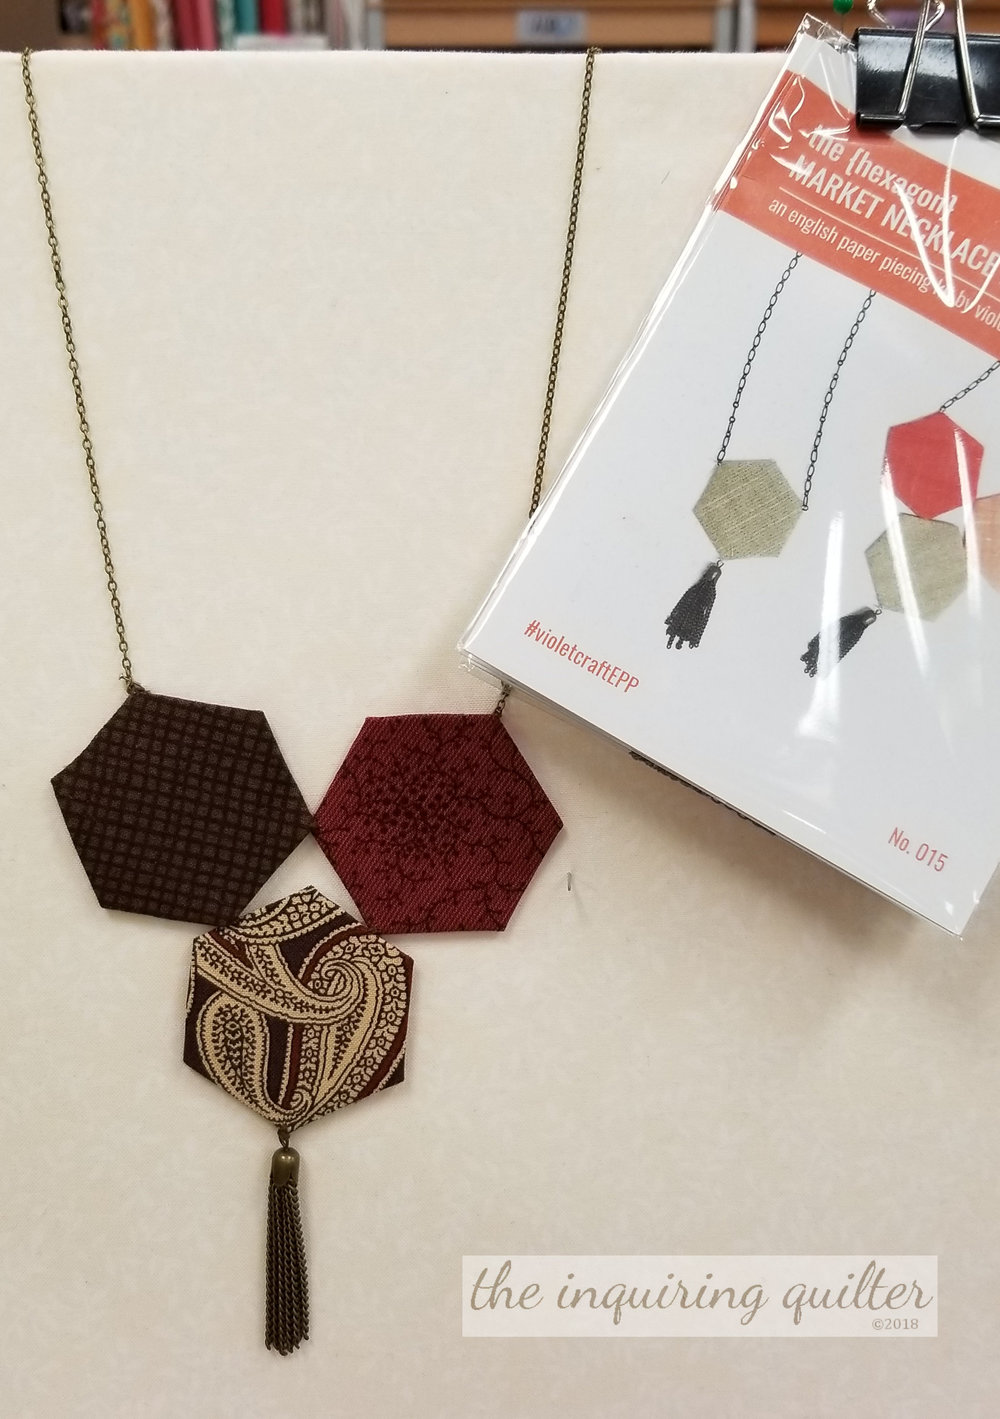 A few months ago, this cute kit came in. I love how simple this is! Make a few hexies, add the jewelry fixings, and you've got a necklace! I love how clever and easy this is.